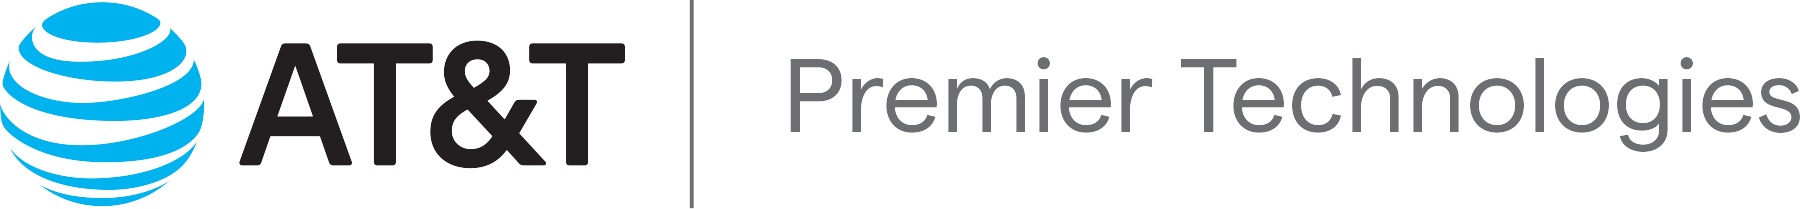 Premier Technologies Logo Colored